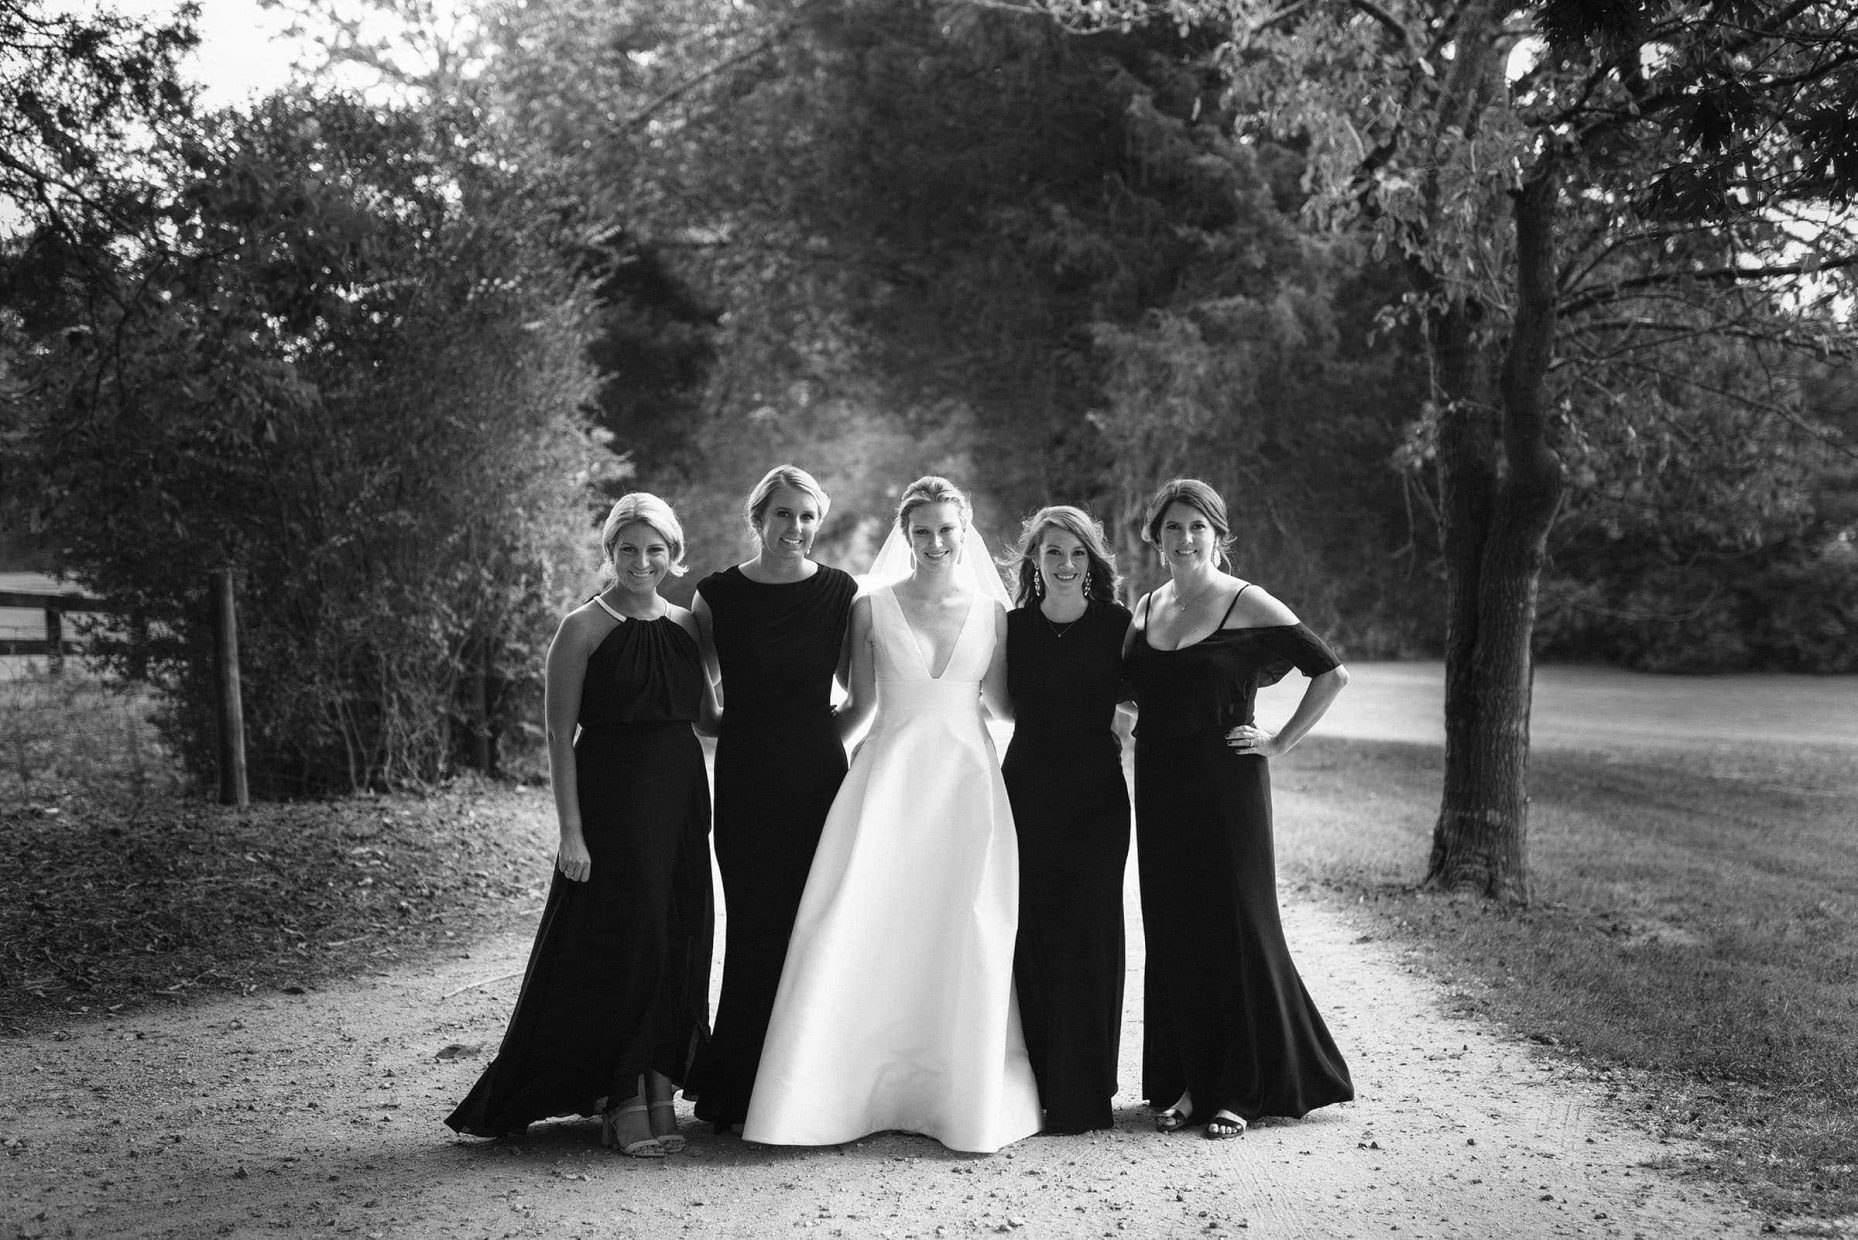 Bridesmaids-Black-White